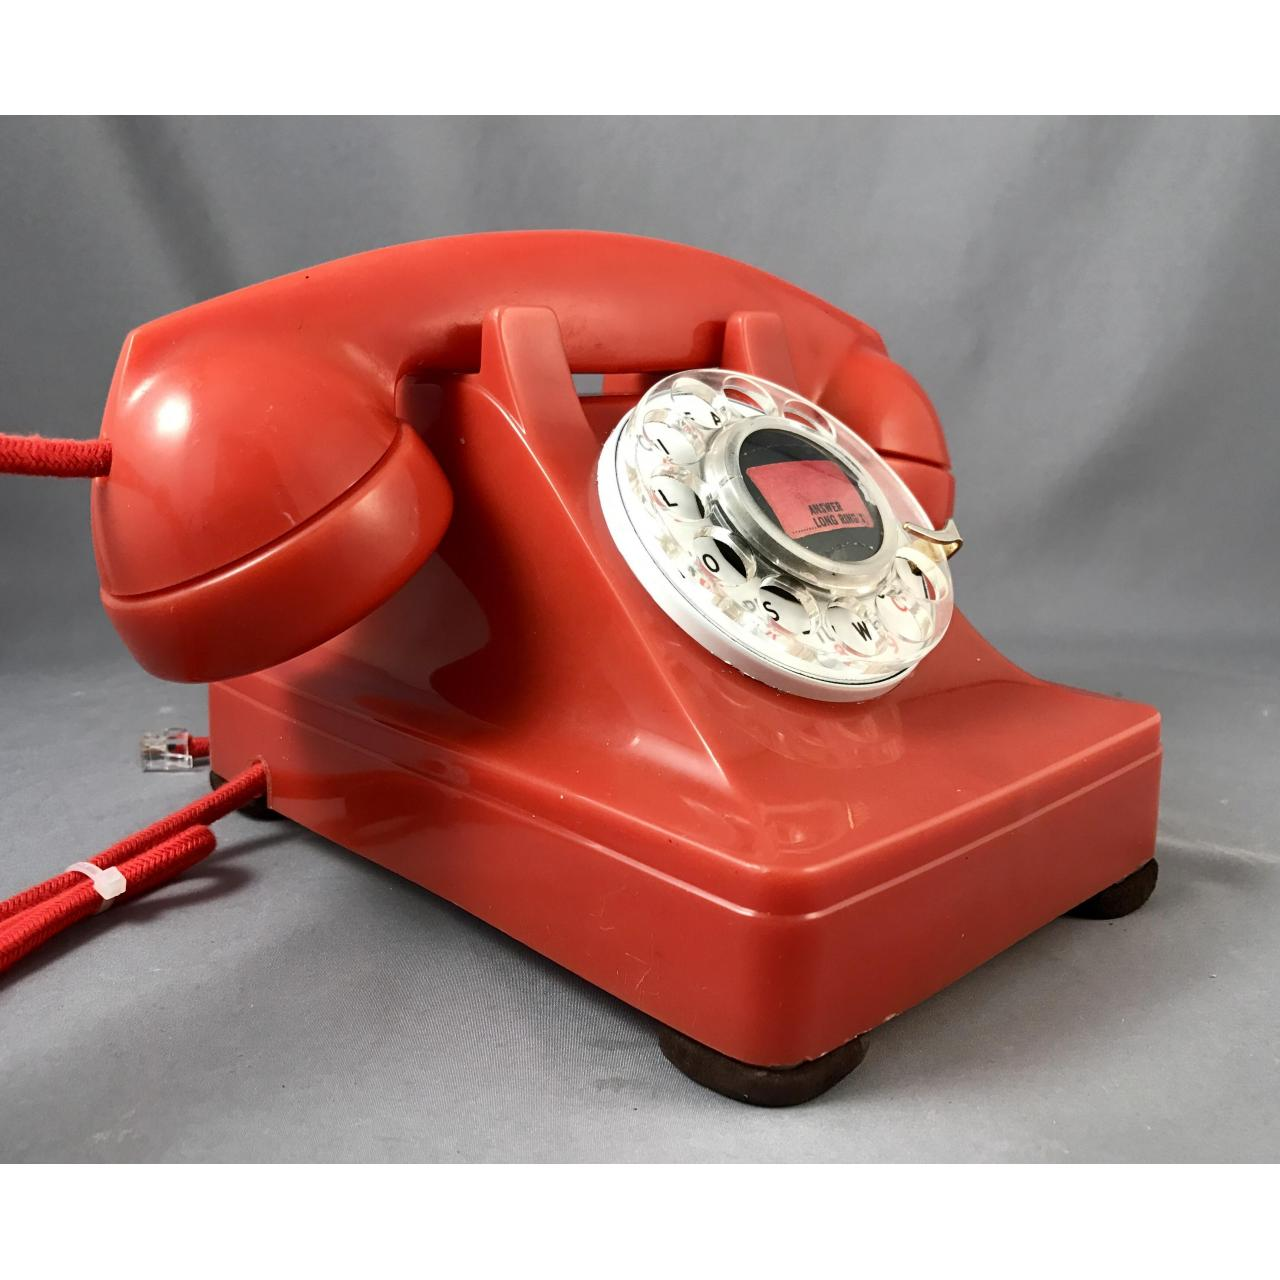 302 - Red - Fully Refurbished Antique Phones